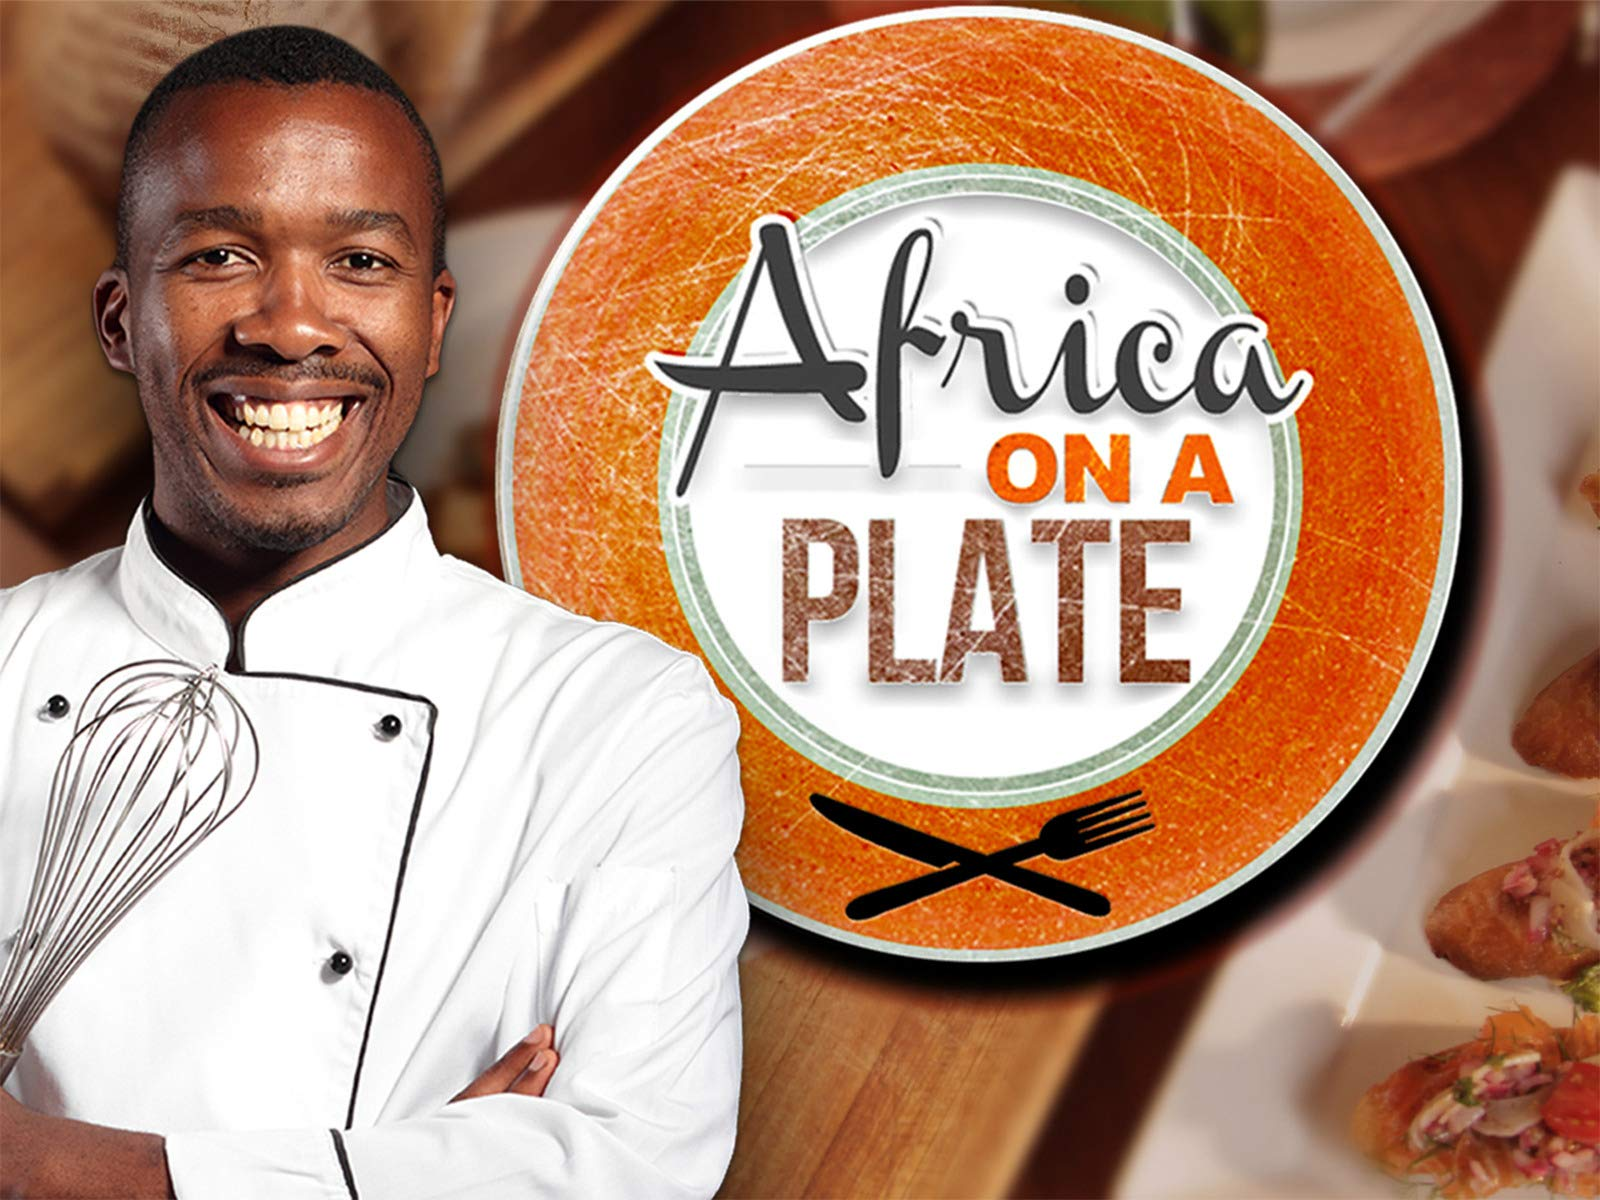 Africa On a Plate